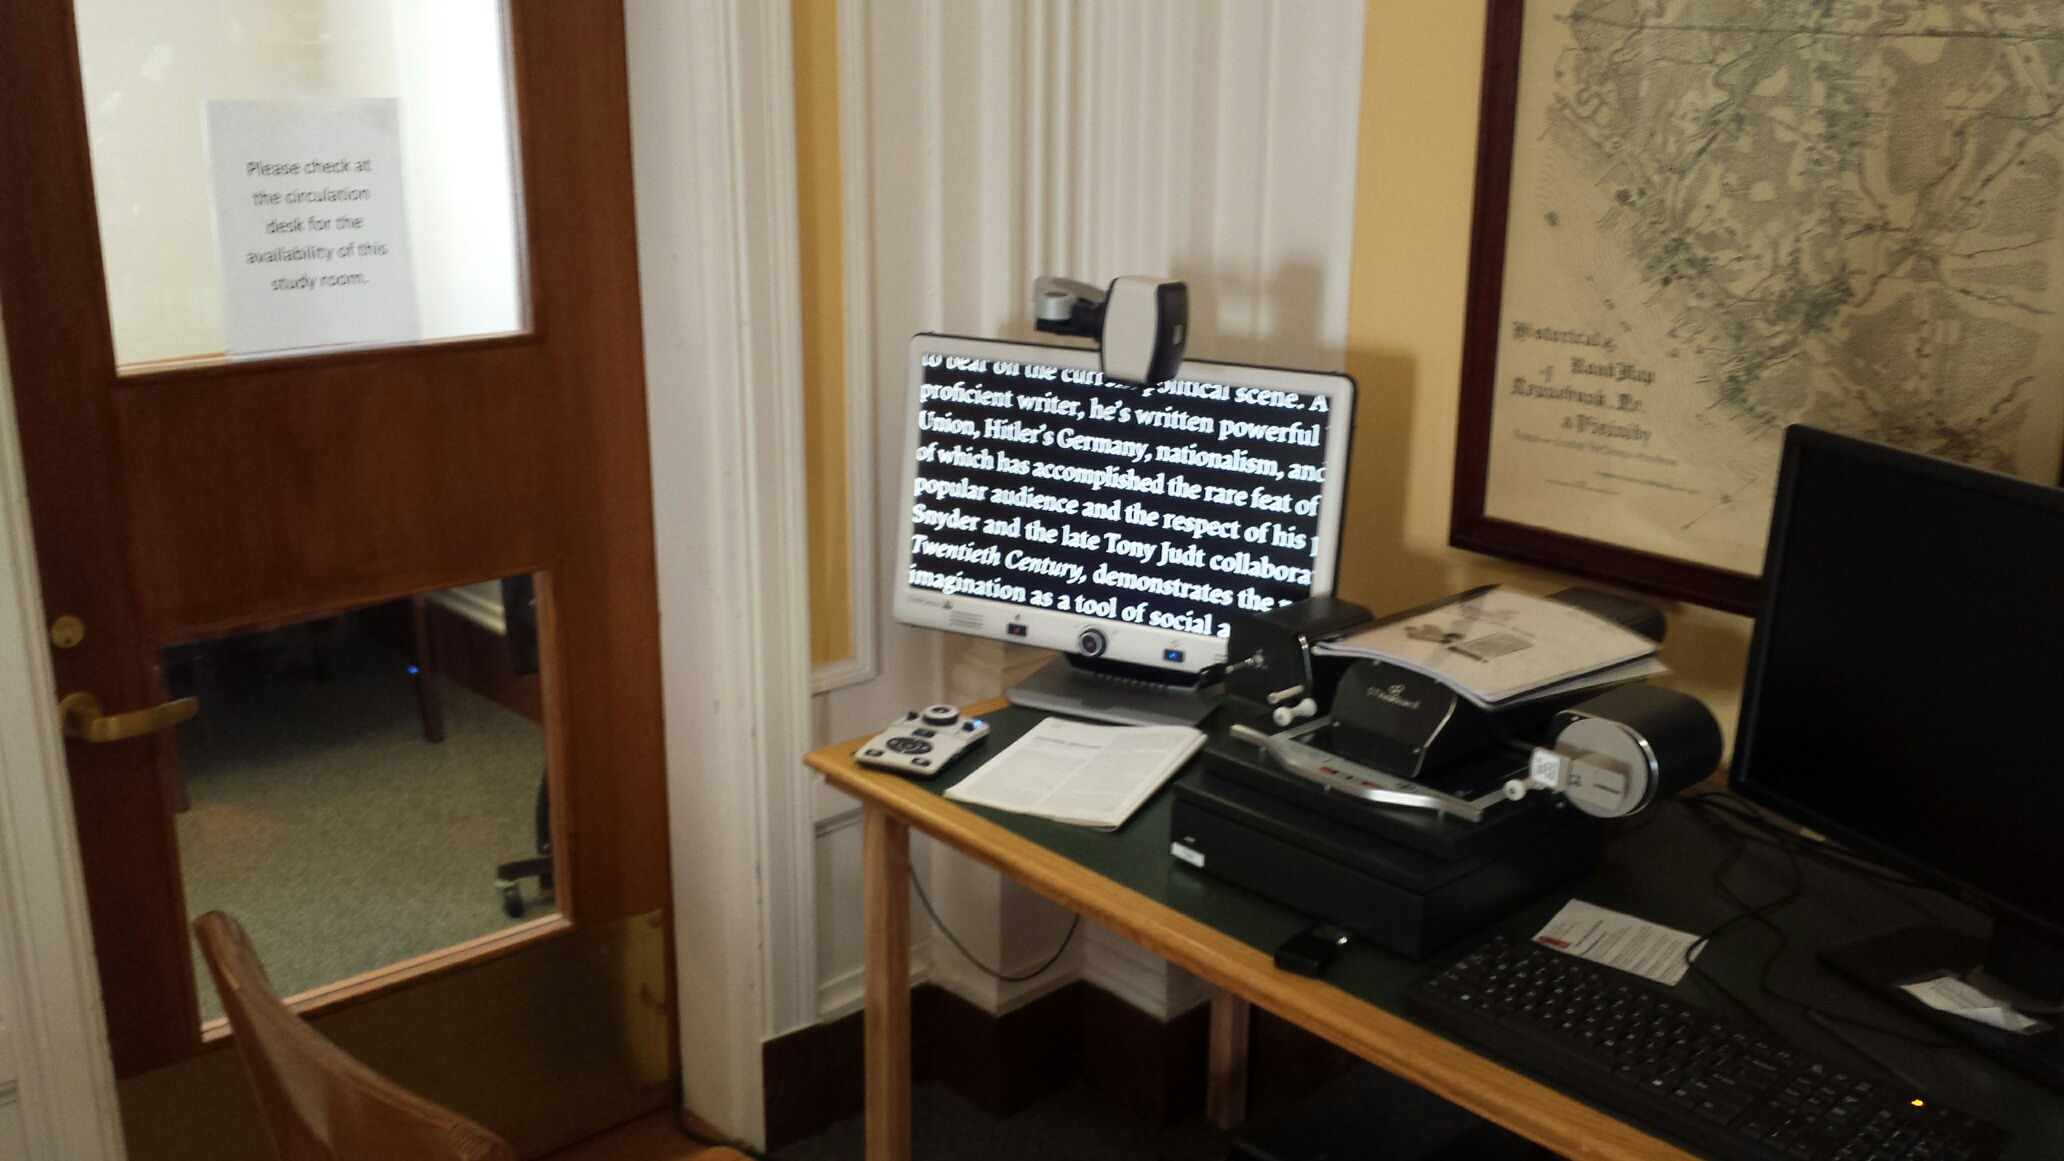 DaVinci video magnifier being used to read in the Kennebunk Free Library